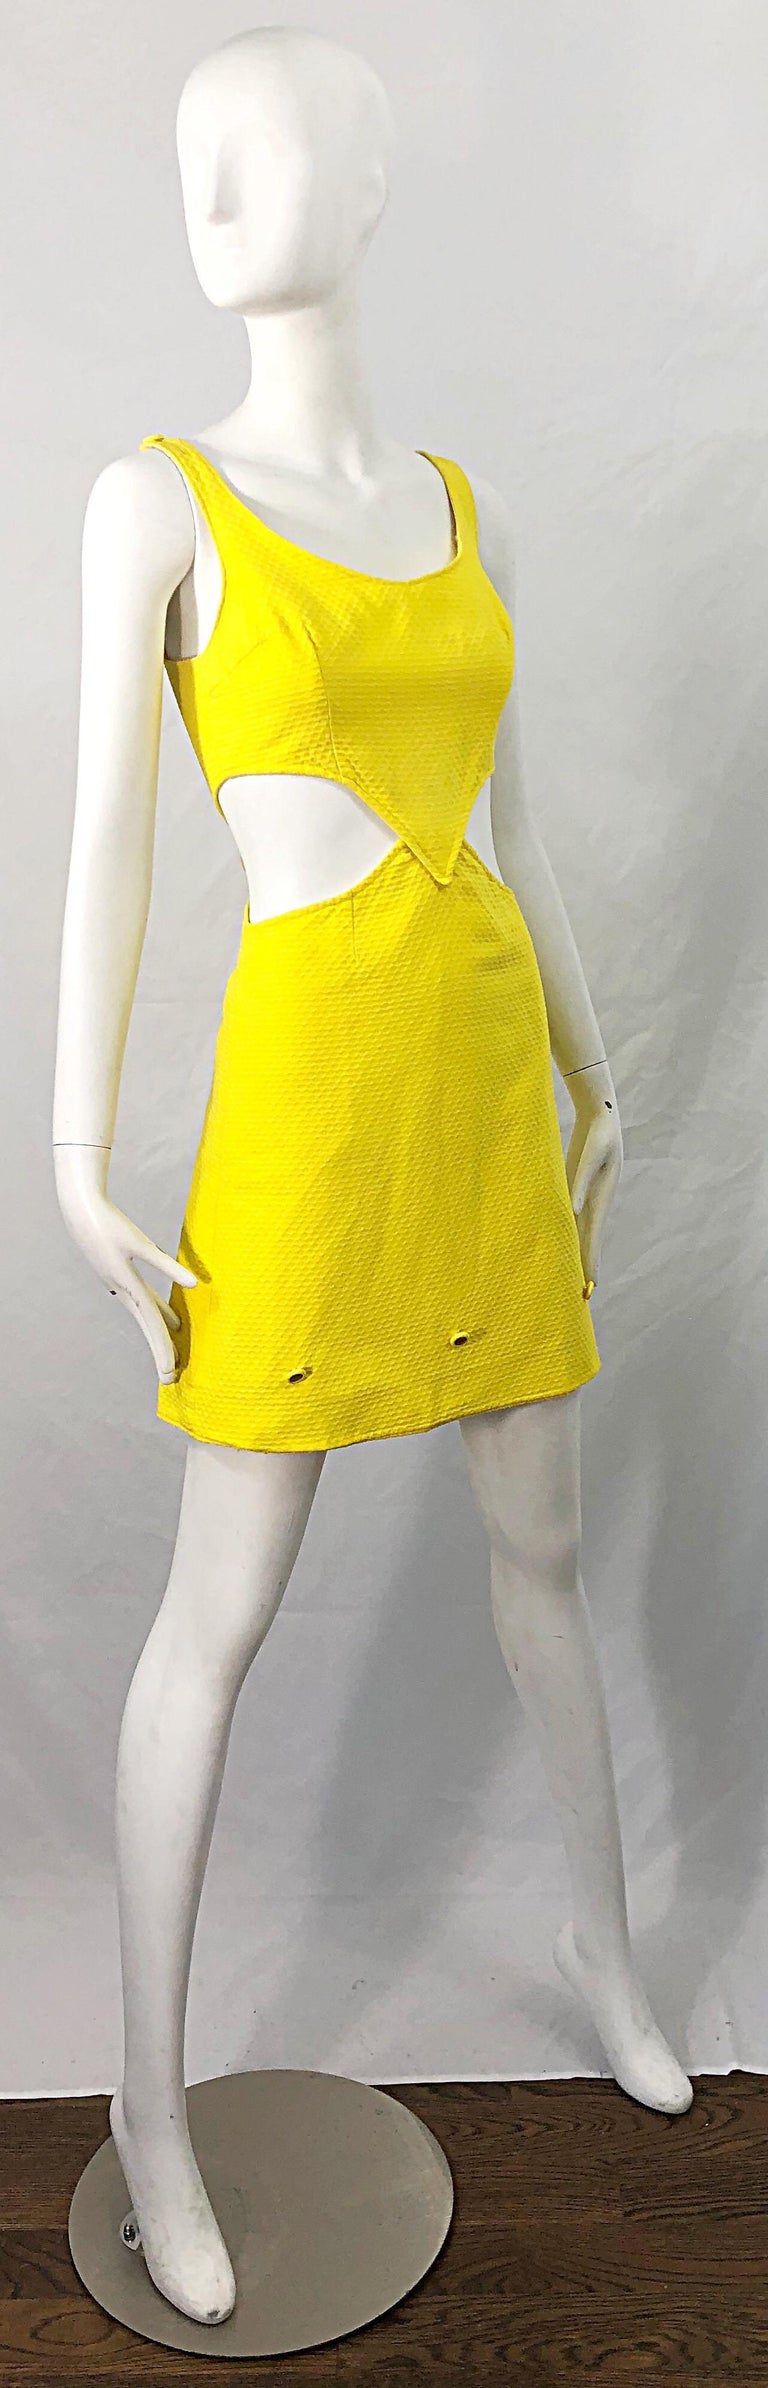 1960s Canary Yellow Cut - Out Honeycomb Cotton Vintage 60s A Line Dress For Sale 6